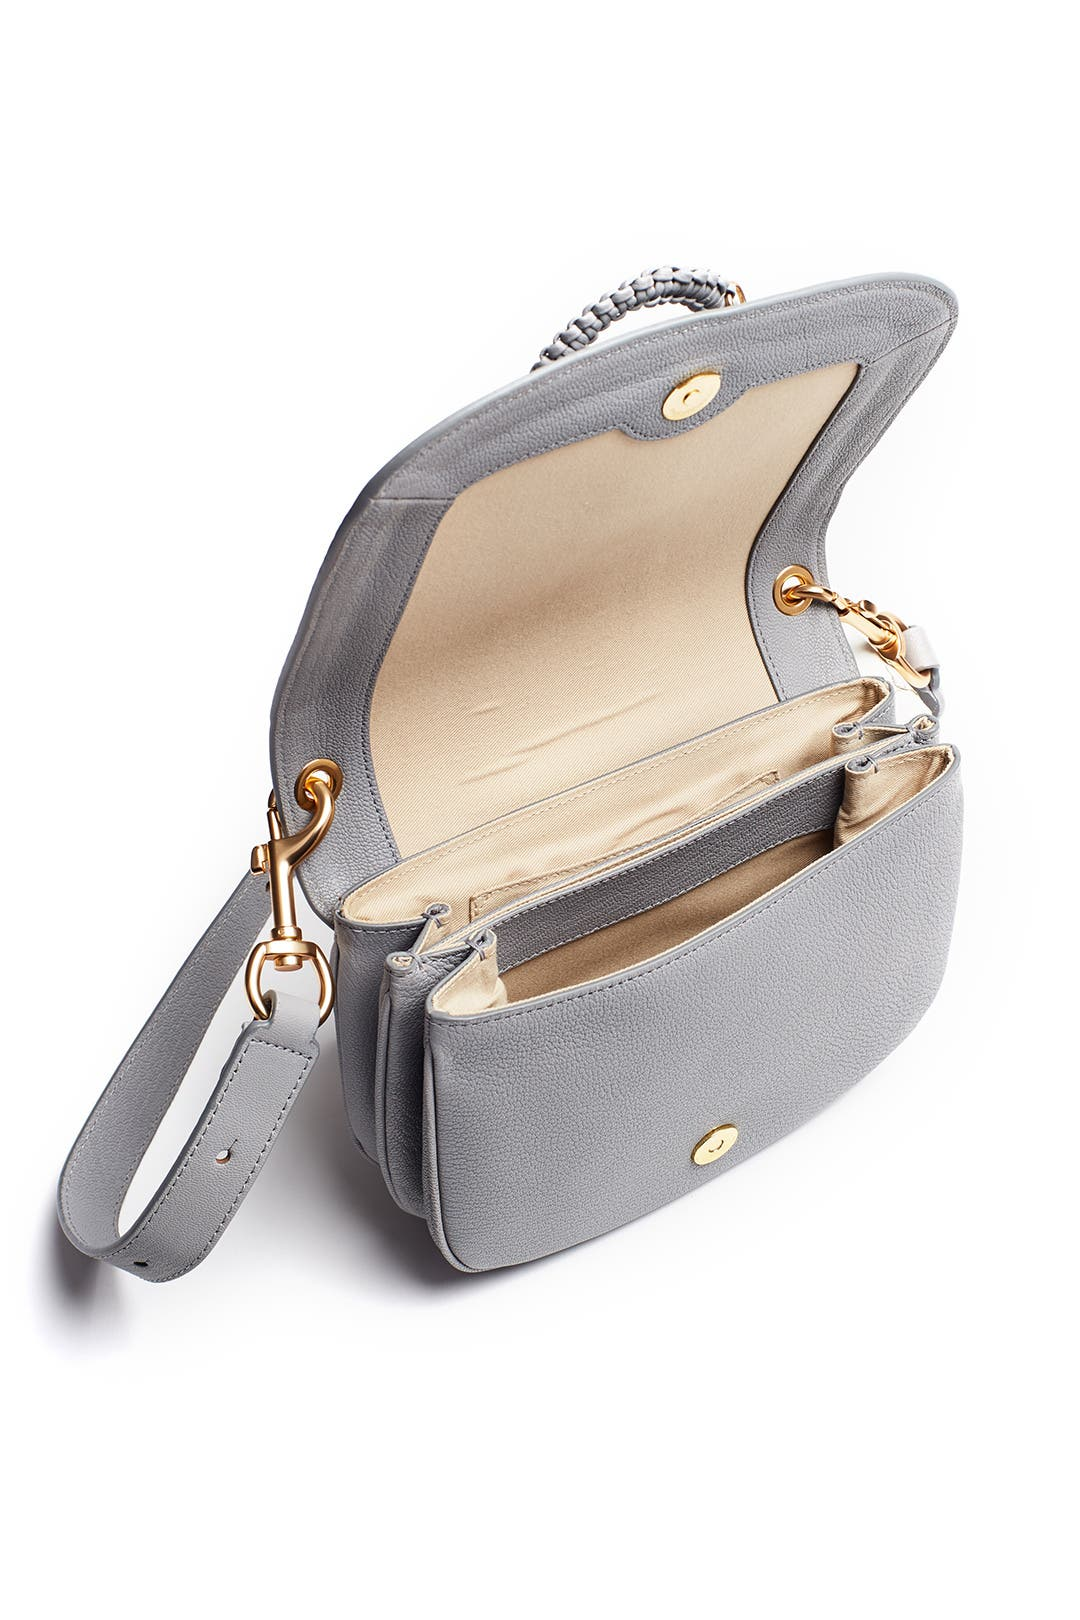 Skylight Hana Shoulder Bag By See Chloe Accessories For 70 Rent The Runway